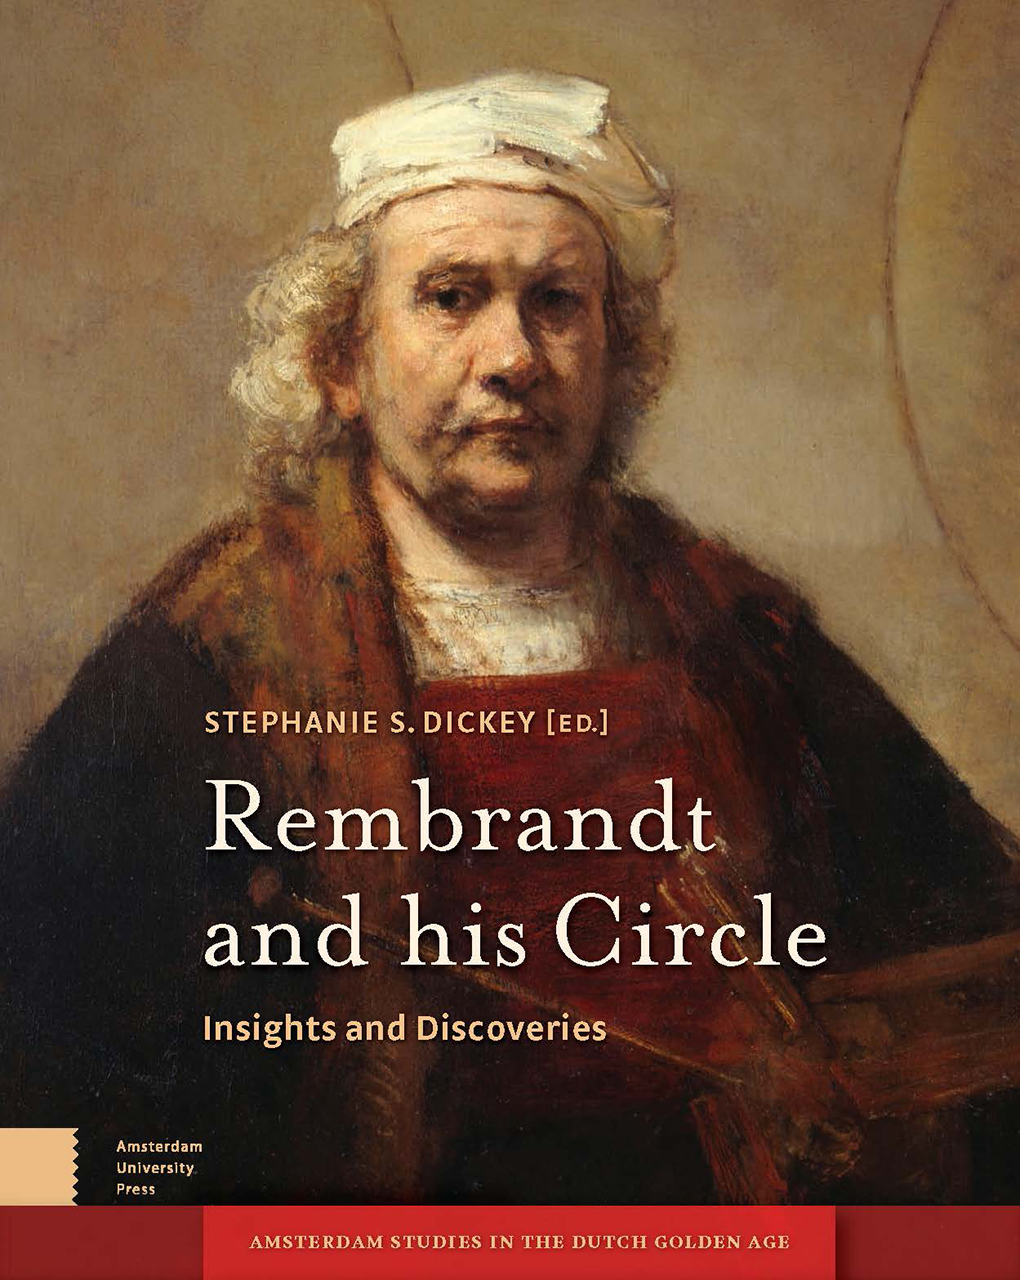 Rembrandt and His Circle: Insights and Discoveries